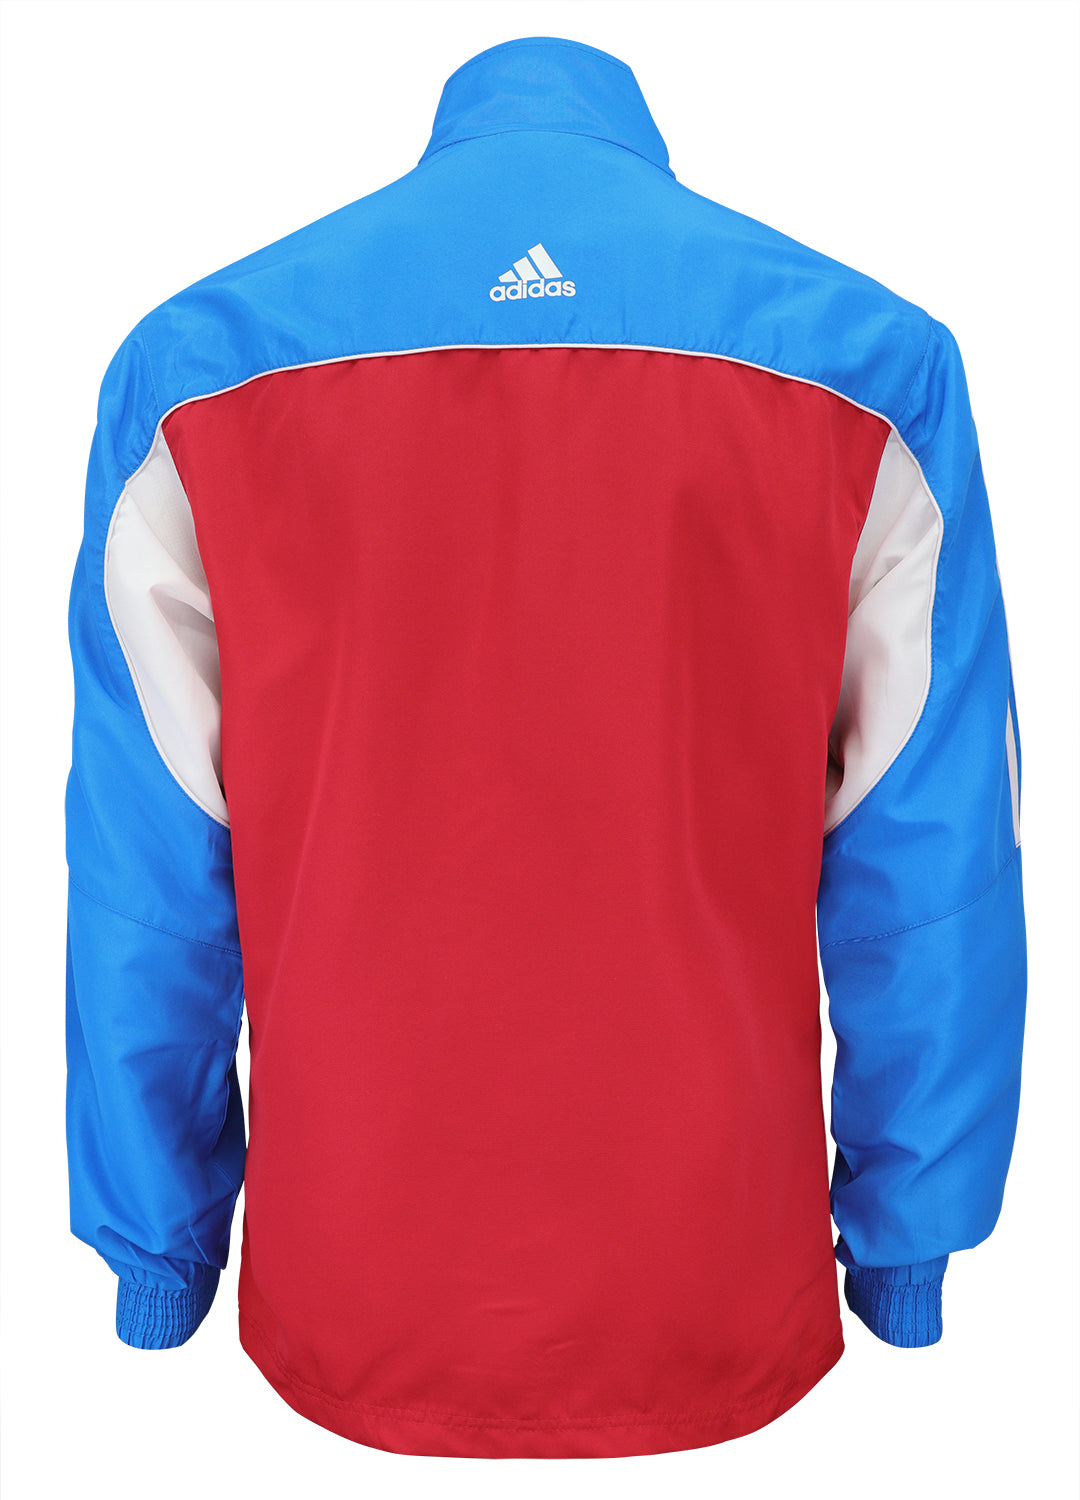 adidas Red White Blue Windbreaker Style Team Jacket Back View